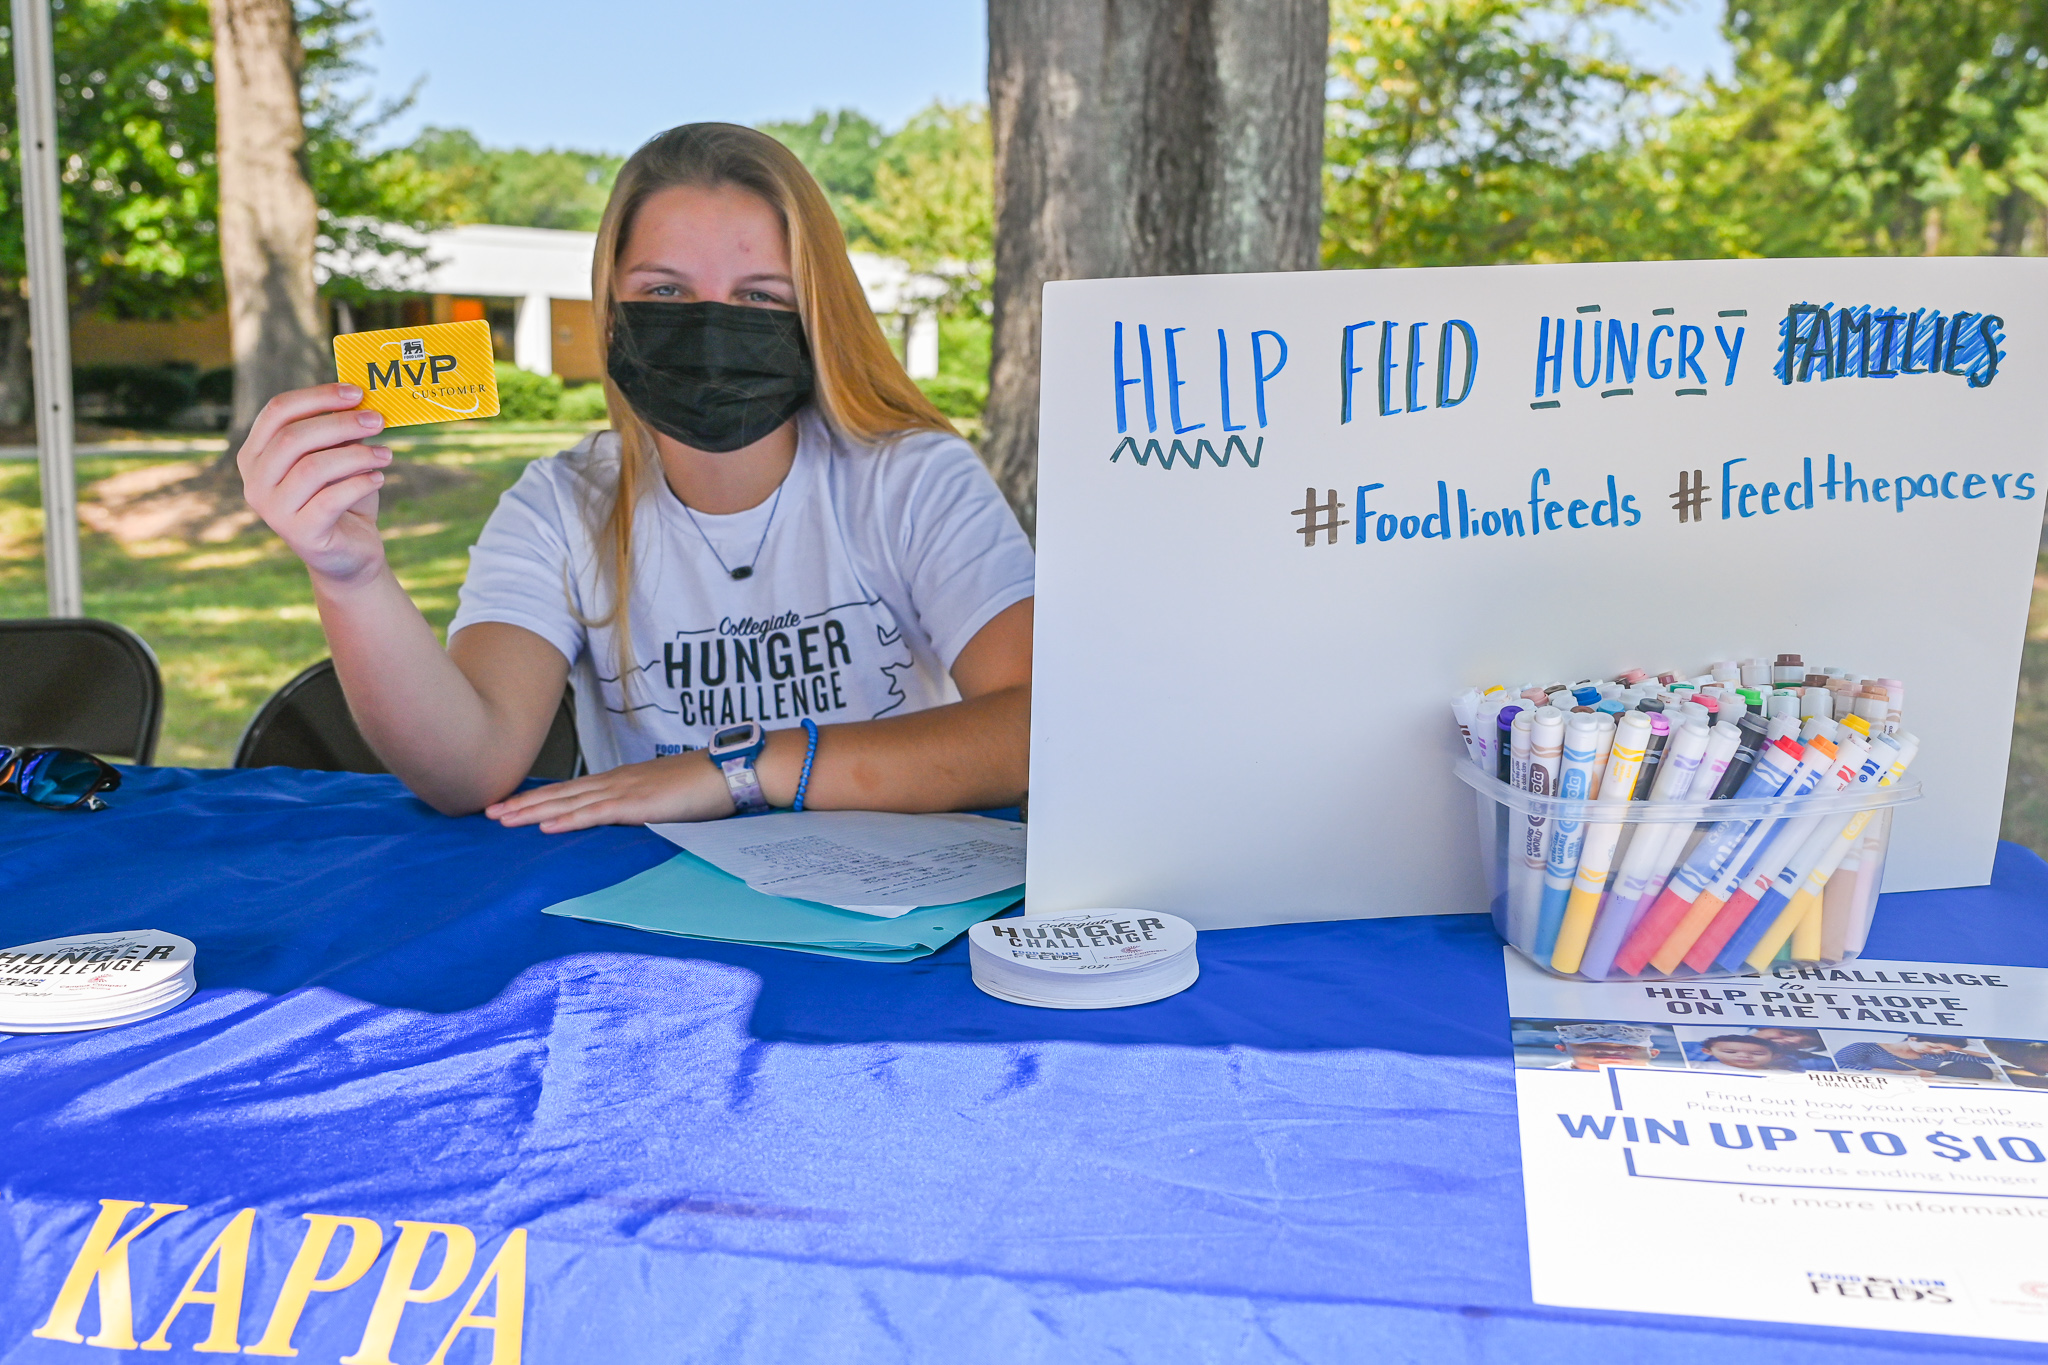 PCC Student Holds Food Lion MVP Card up, with sign dictating how people can help on socials #FoodLionFeeds #FeedThePacers